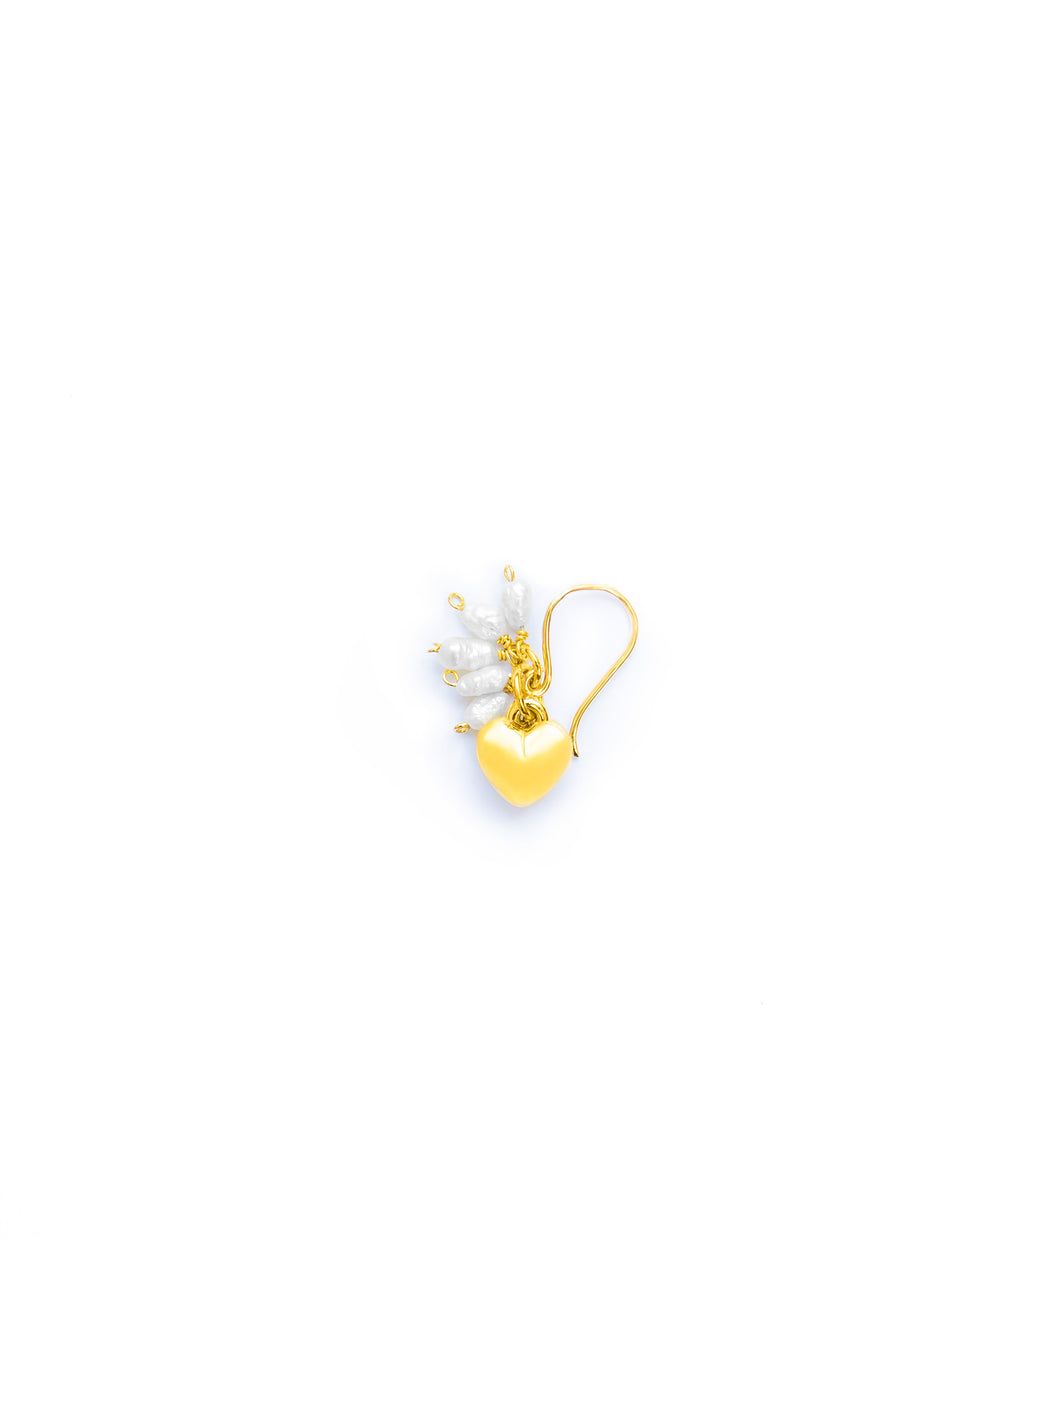 Pendant Hearts with pearls - Small